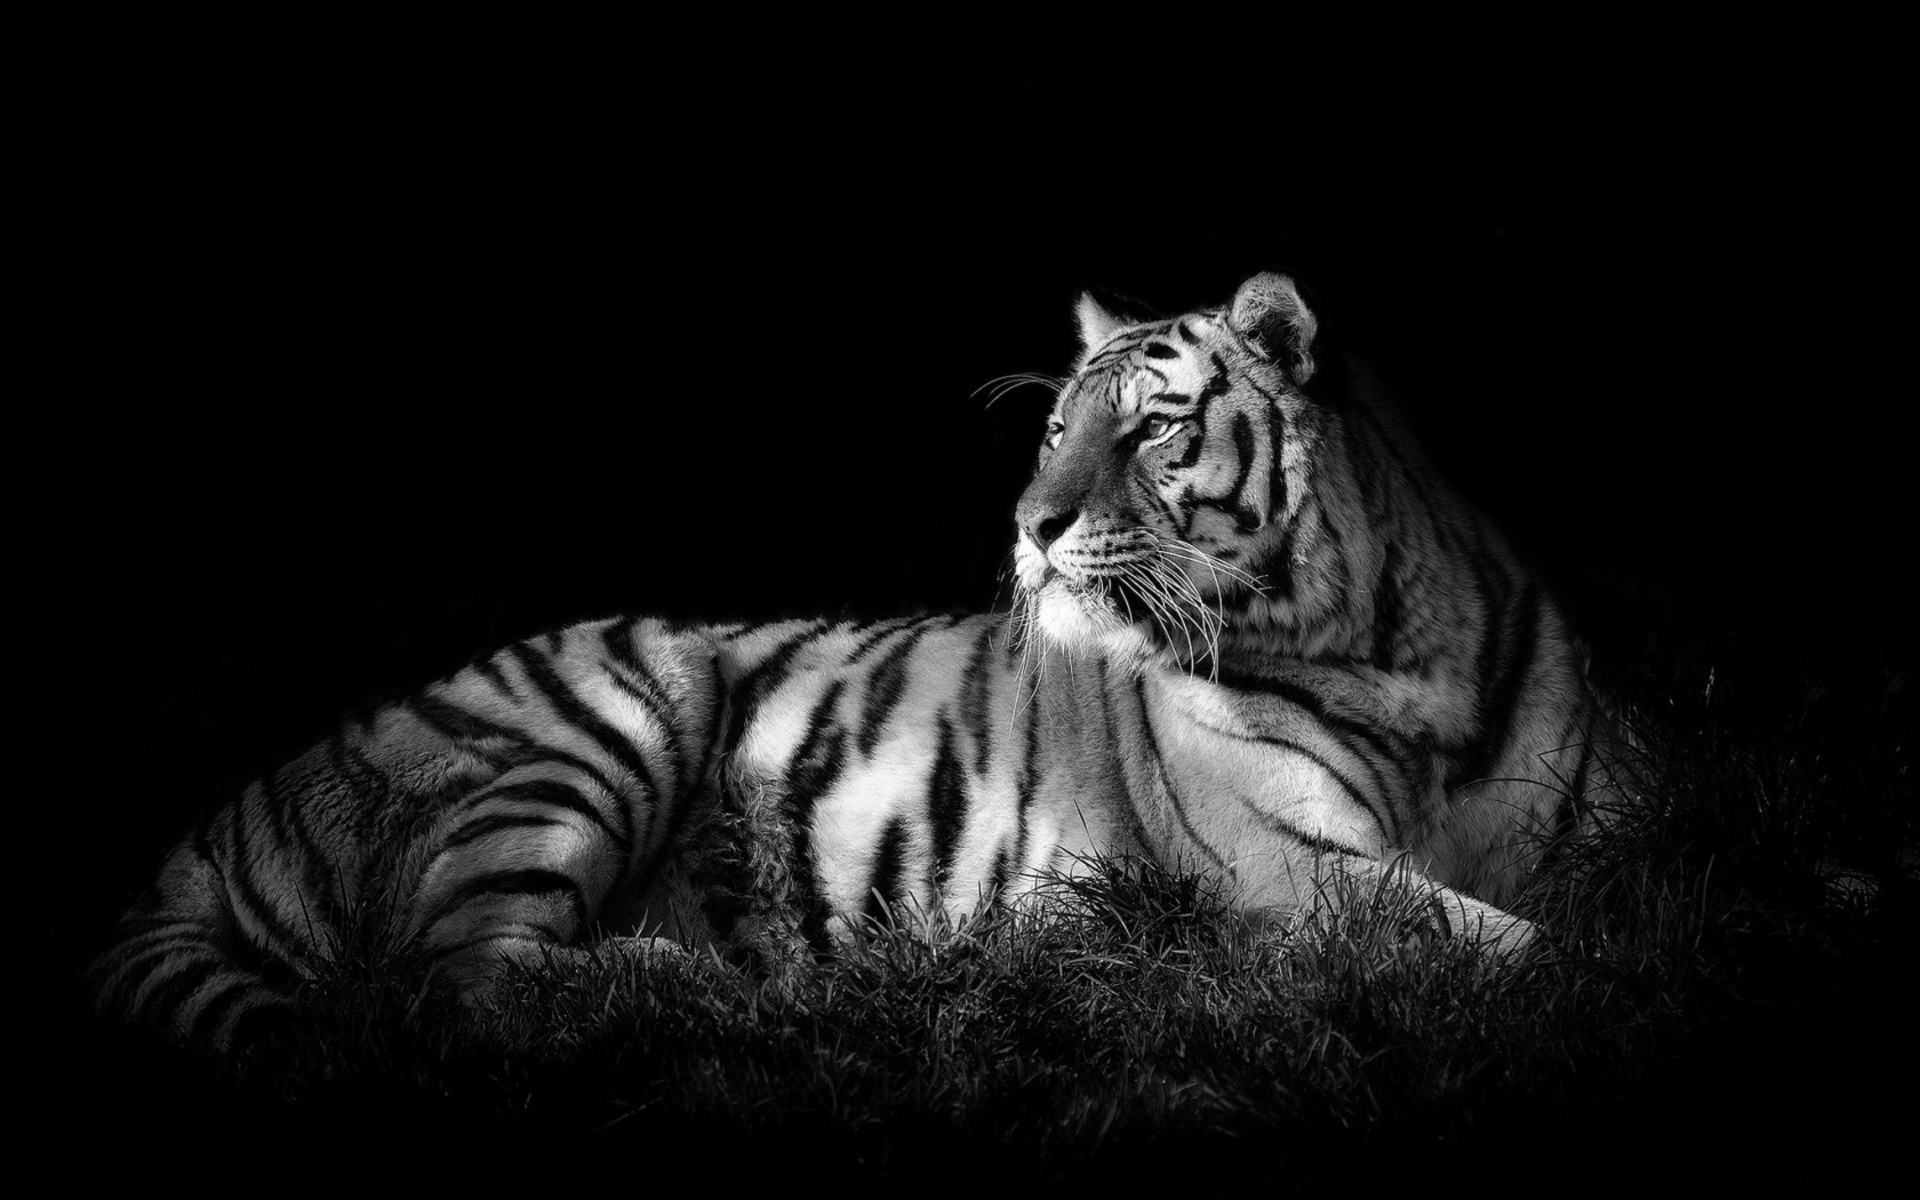 17+ images about Black & White HD on Pinterest | Black backgrounds